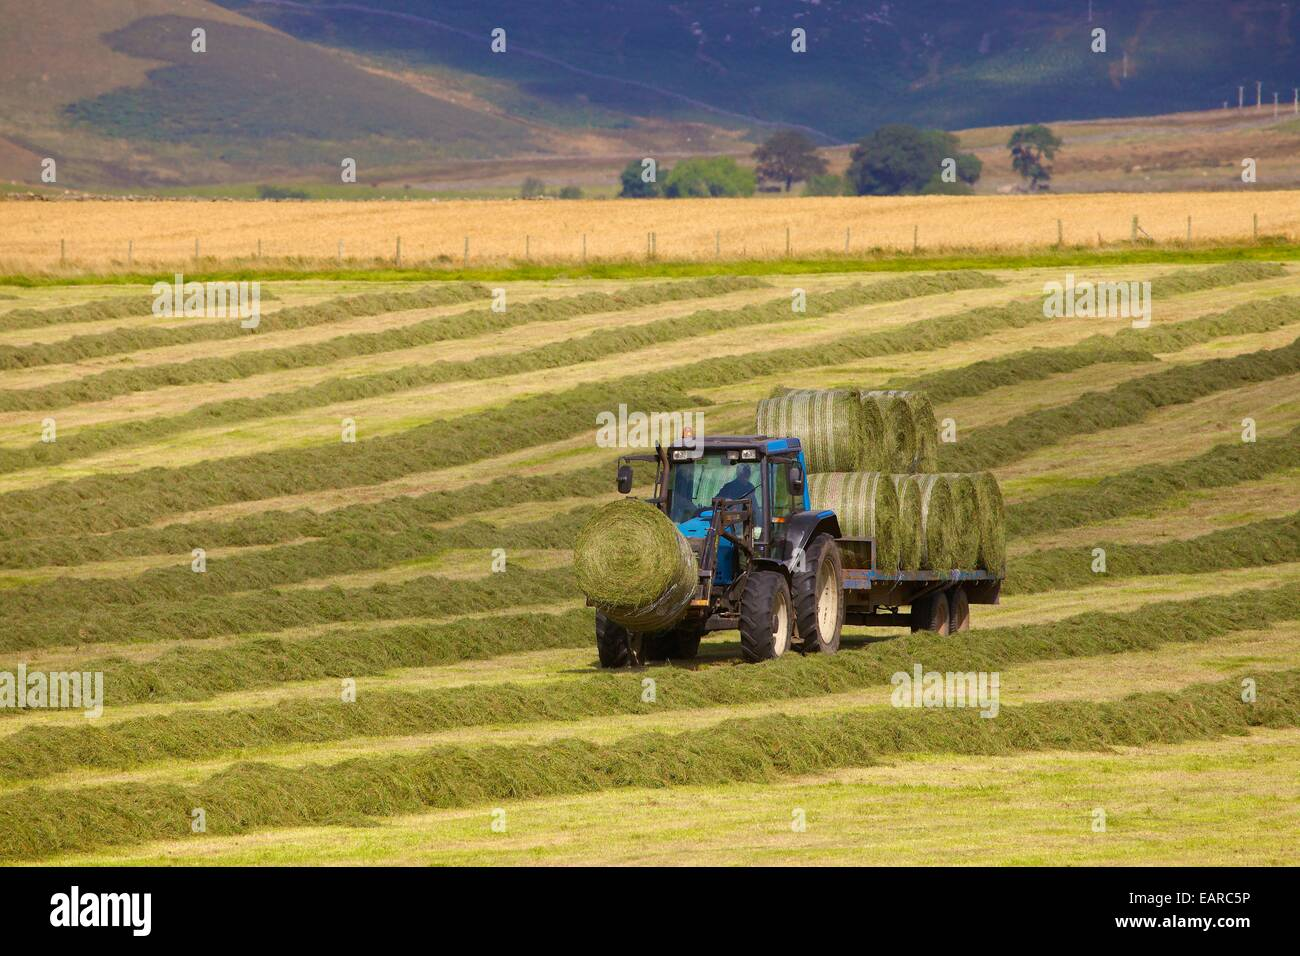 Tractor and trailer transporting hay bails. Eden Valley, Cumbria, England, UK. Stock Photo